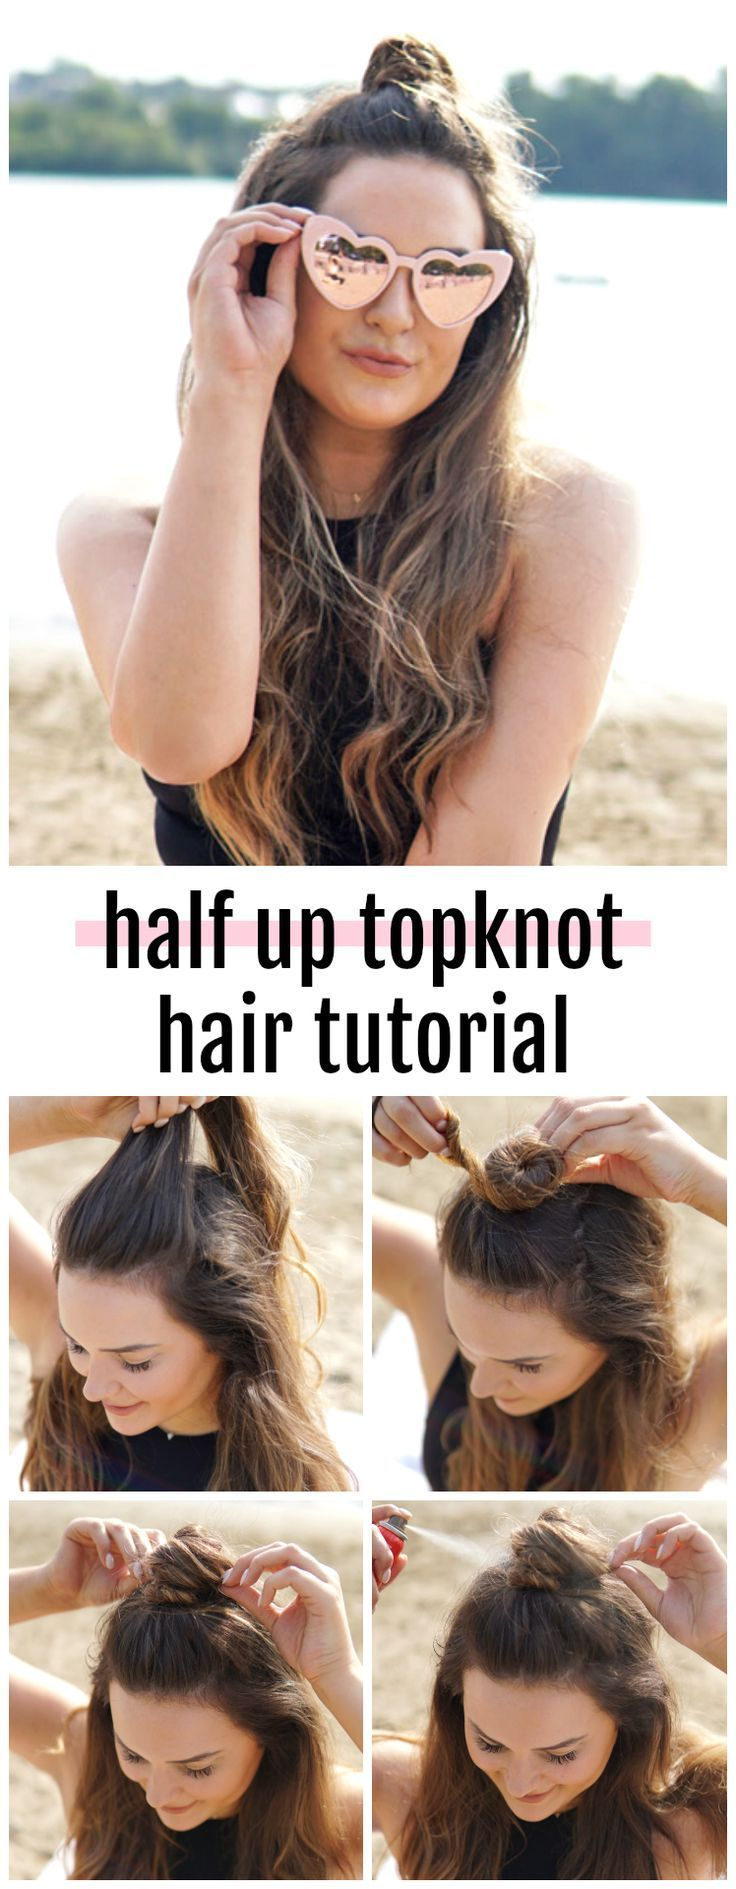 Such an easy hair tutorial! | Fashion, beauty and lifestyle blogger Michelle Kehoe of Mash Elle shares an easy, half up topknot hairstyle for long hair. You can style this hairstyle with straight hair, curled hair, loose waves etc. This tutorial takes und